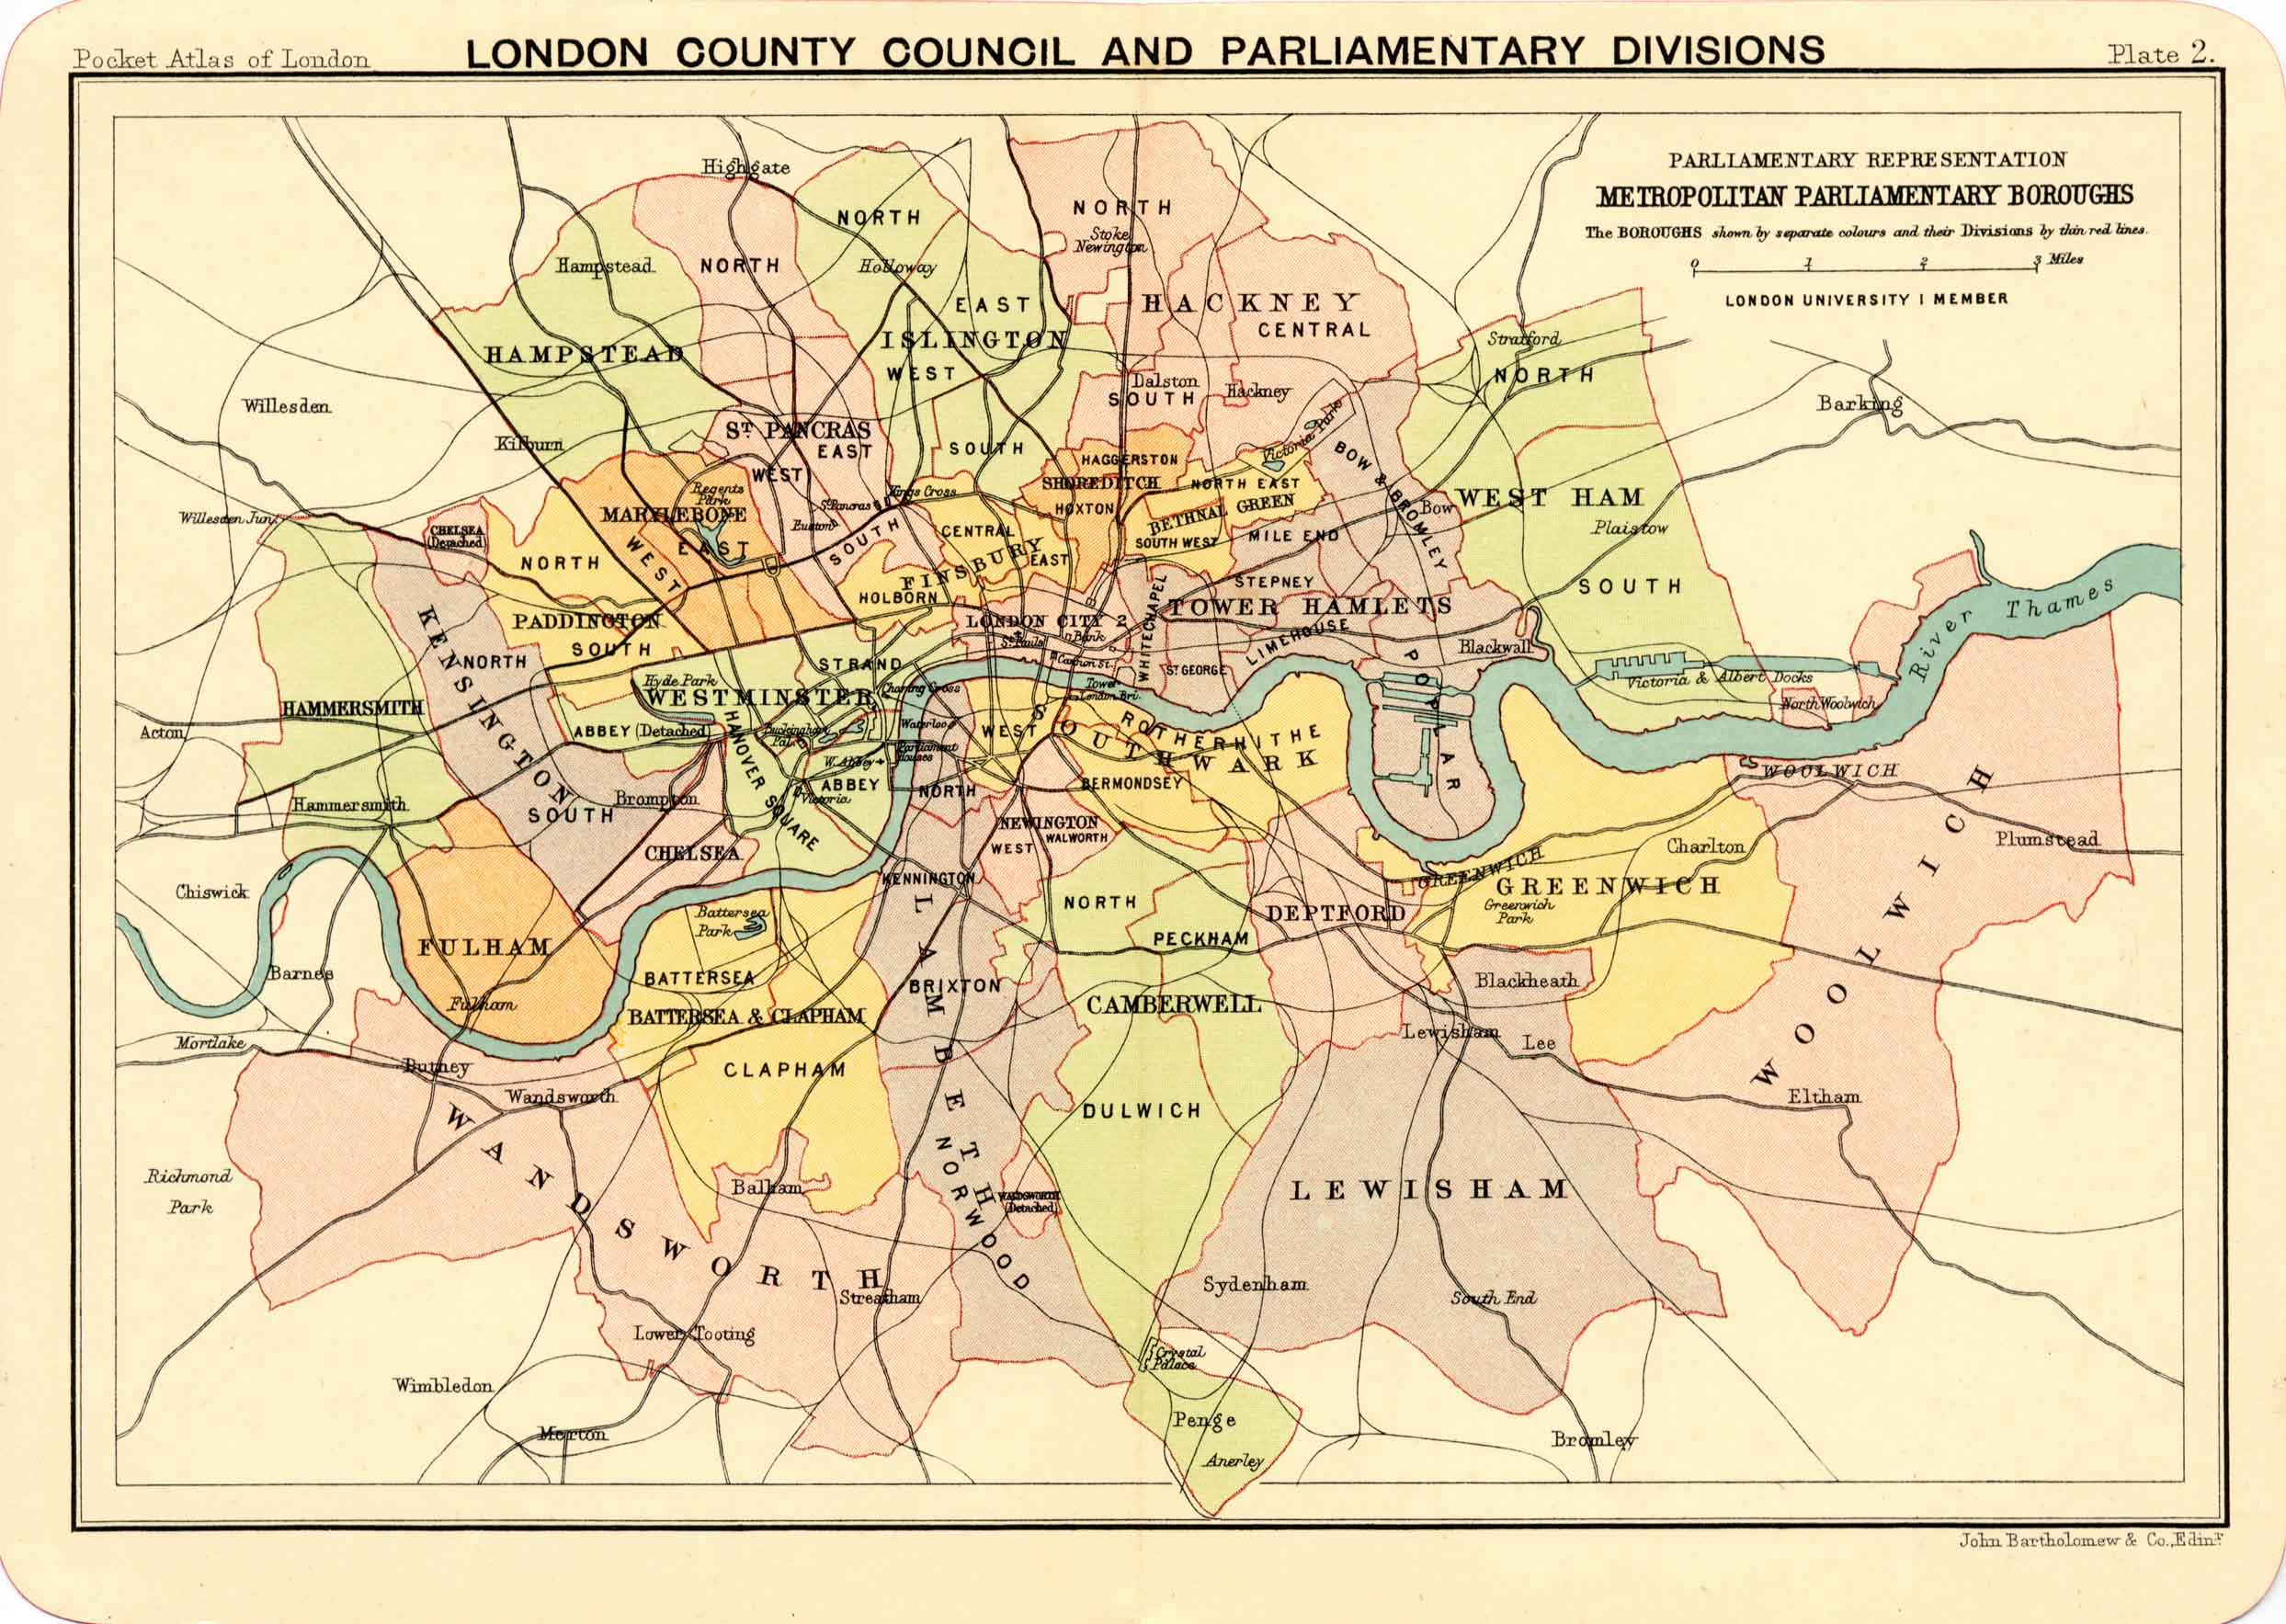 London Places: 10 London Borough Names and Their Fascinating Histories